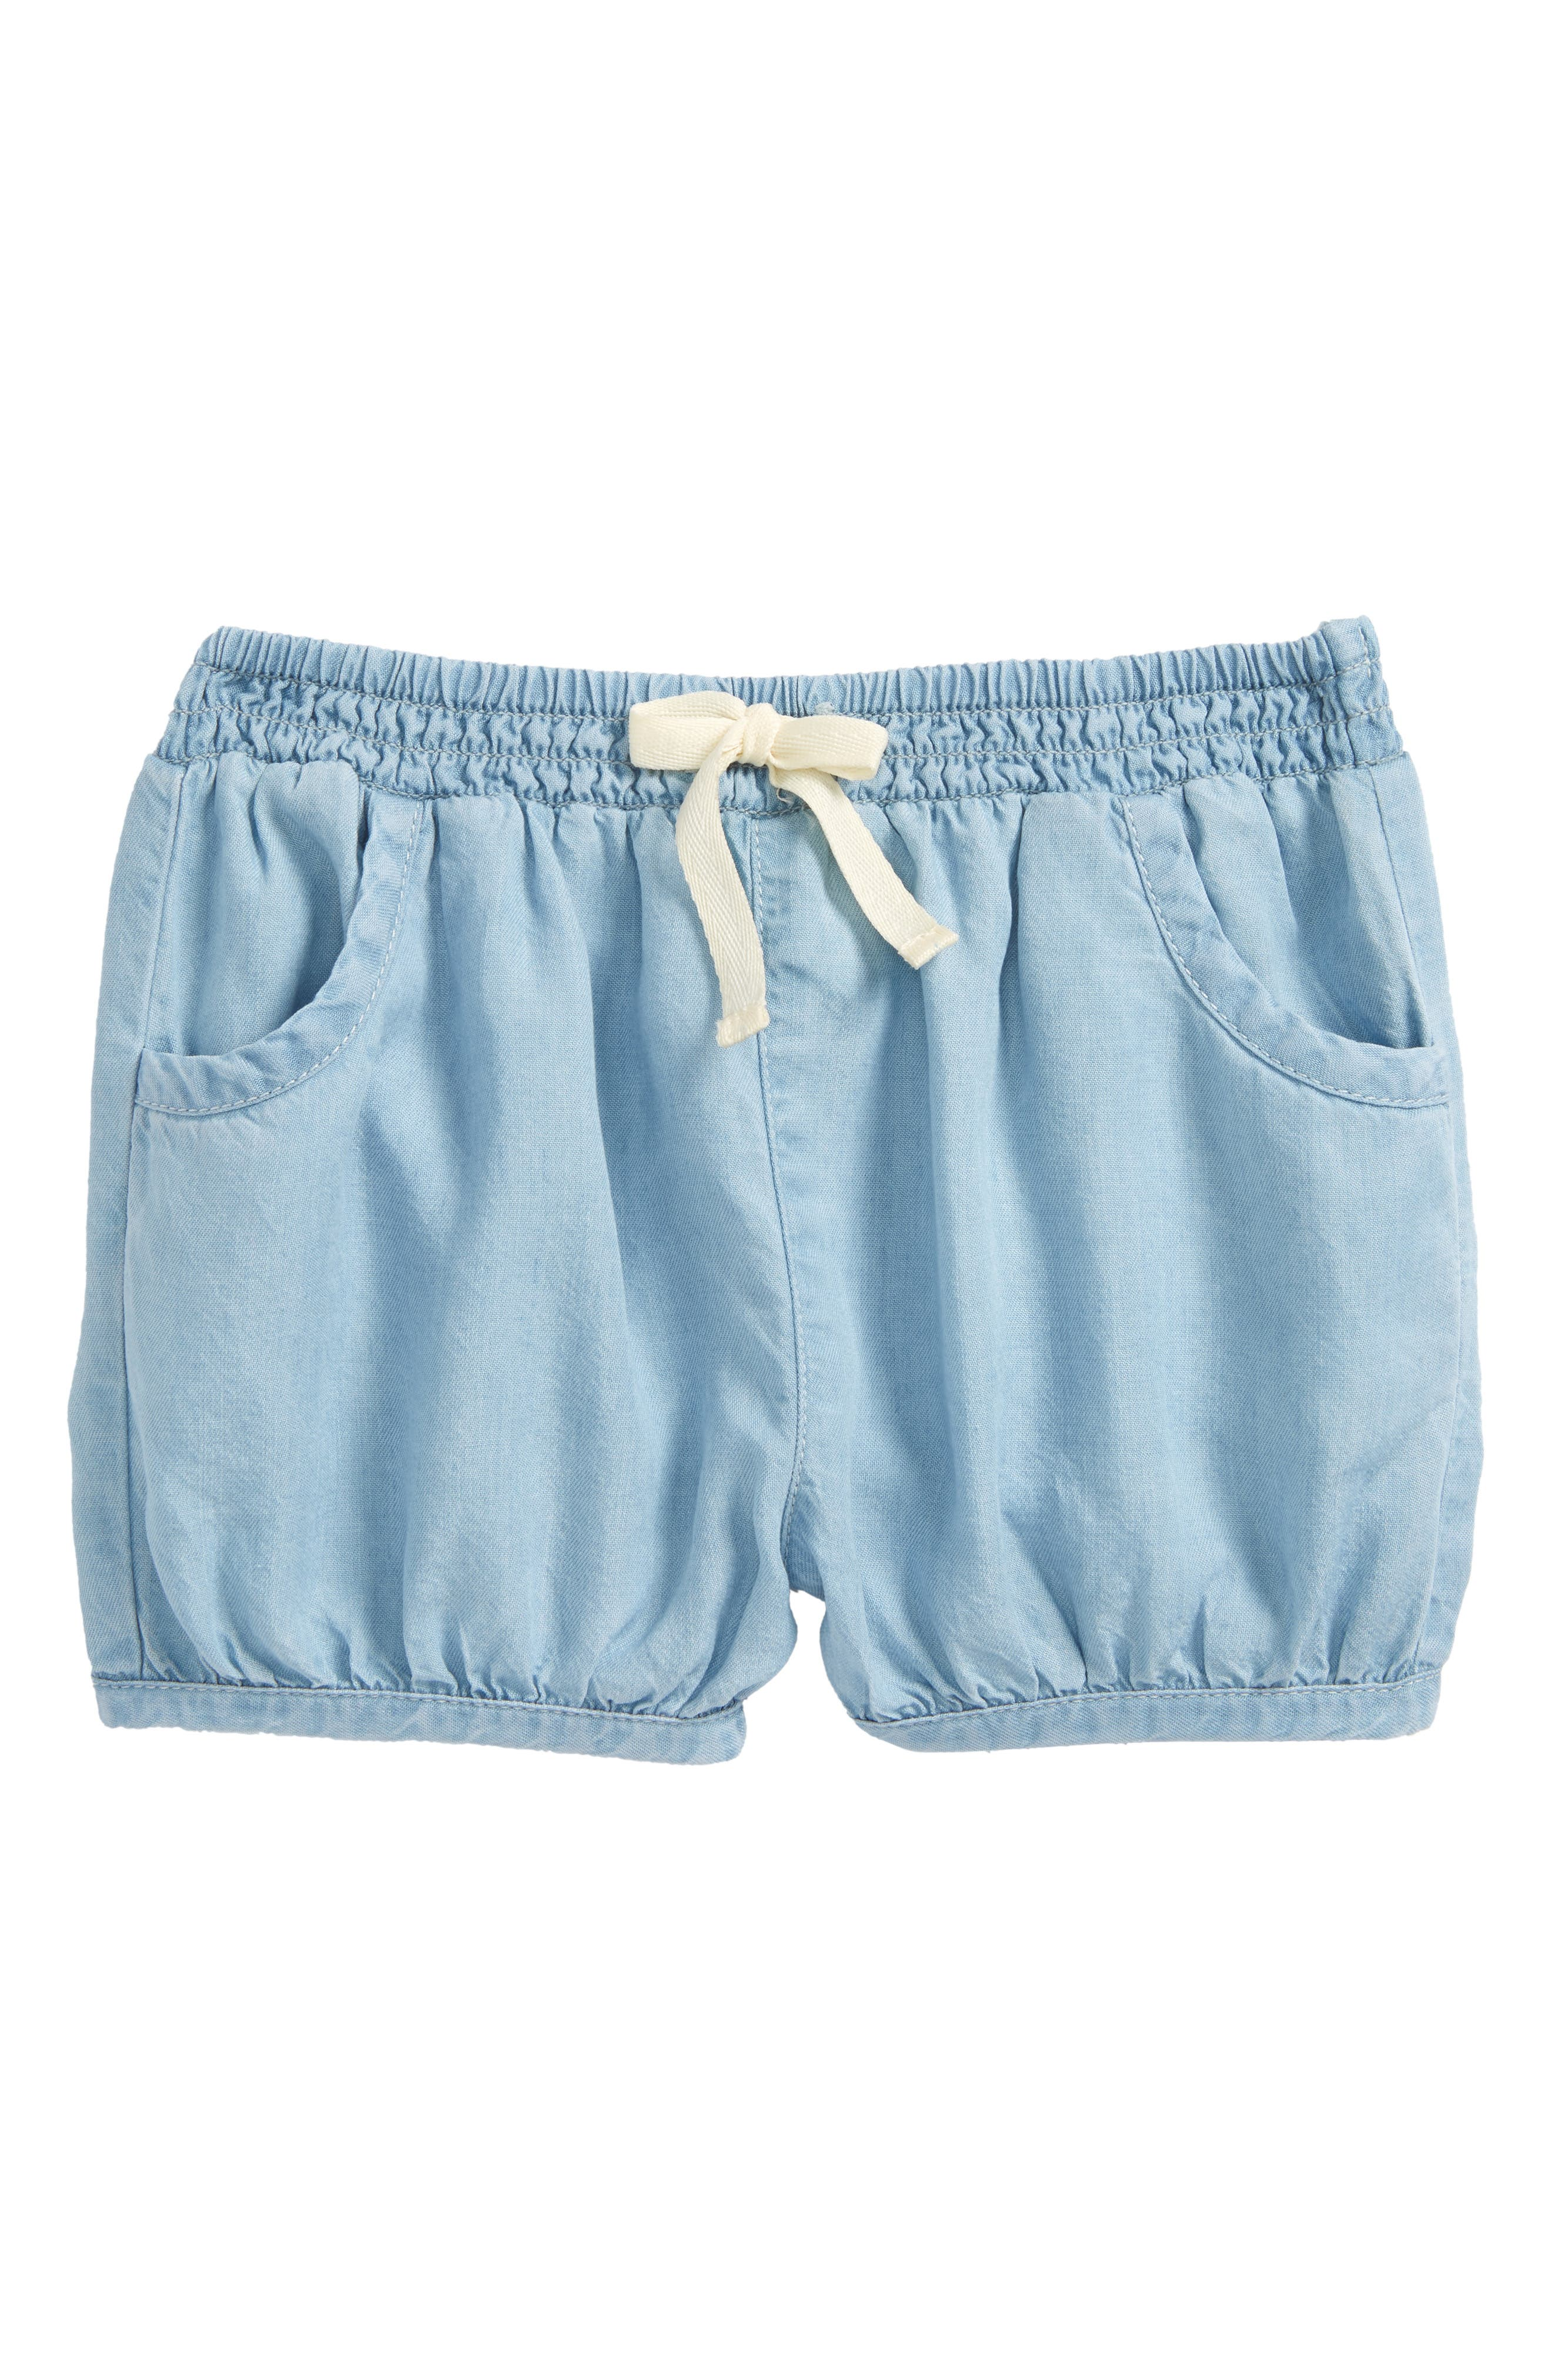 Essential Shorts,                             Main thumbnail 1, color,                             Light Blue Wash